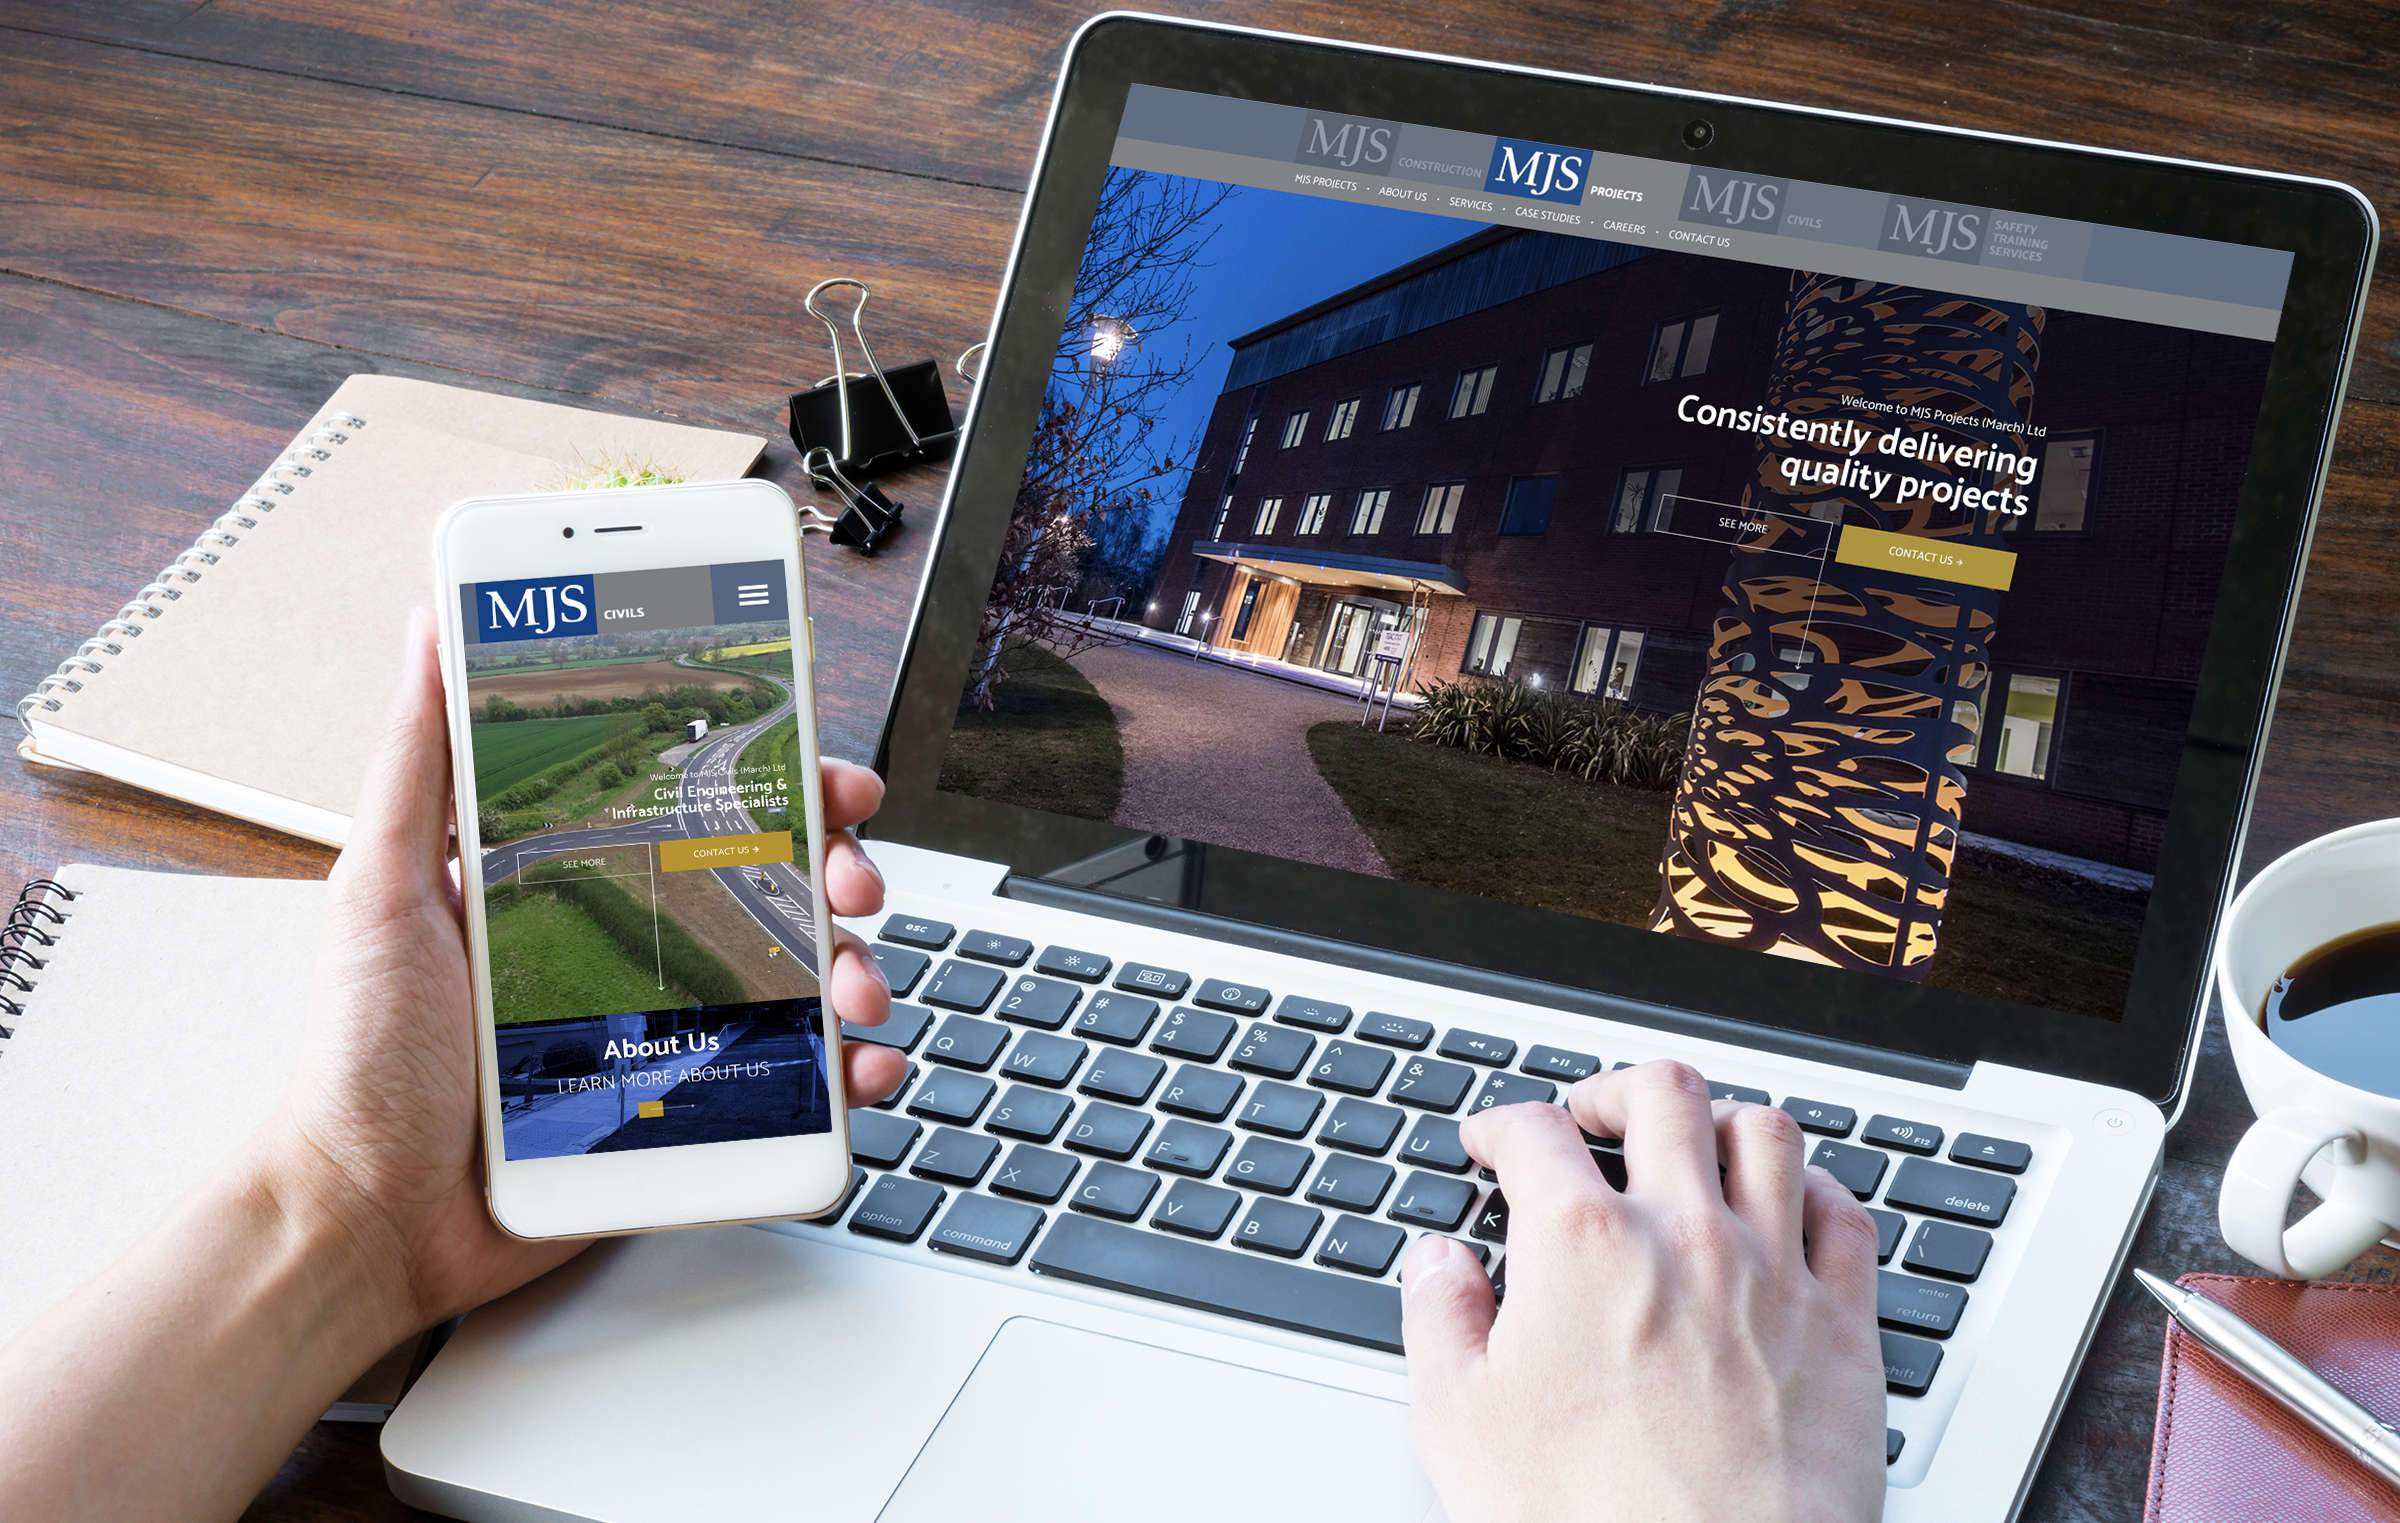 MJS responsive website displaying on laptop and mobile